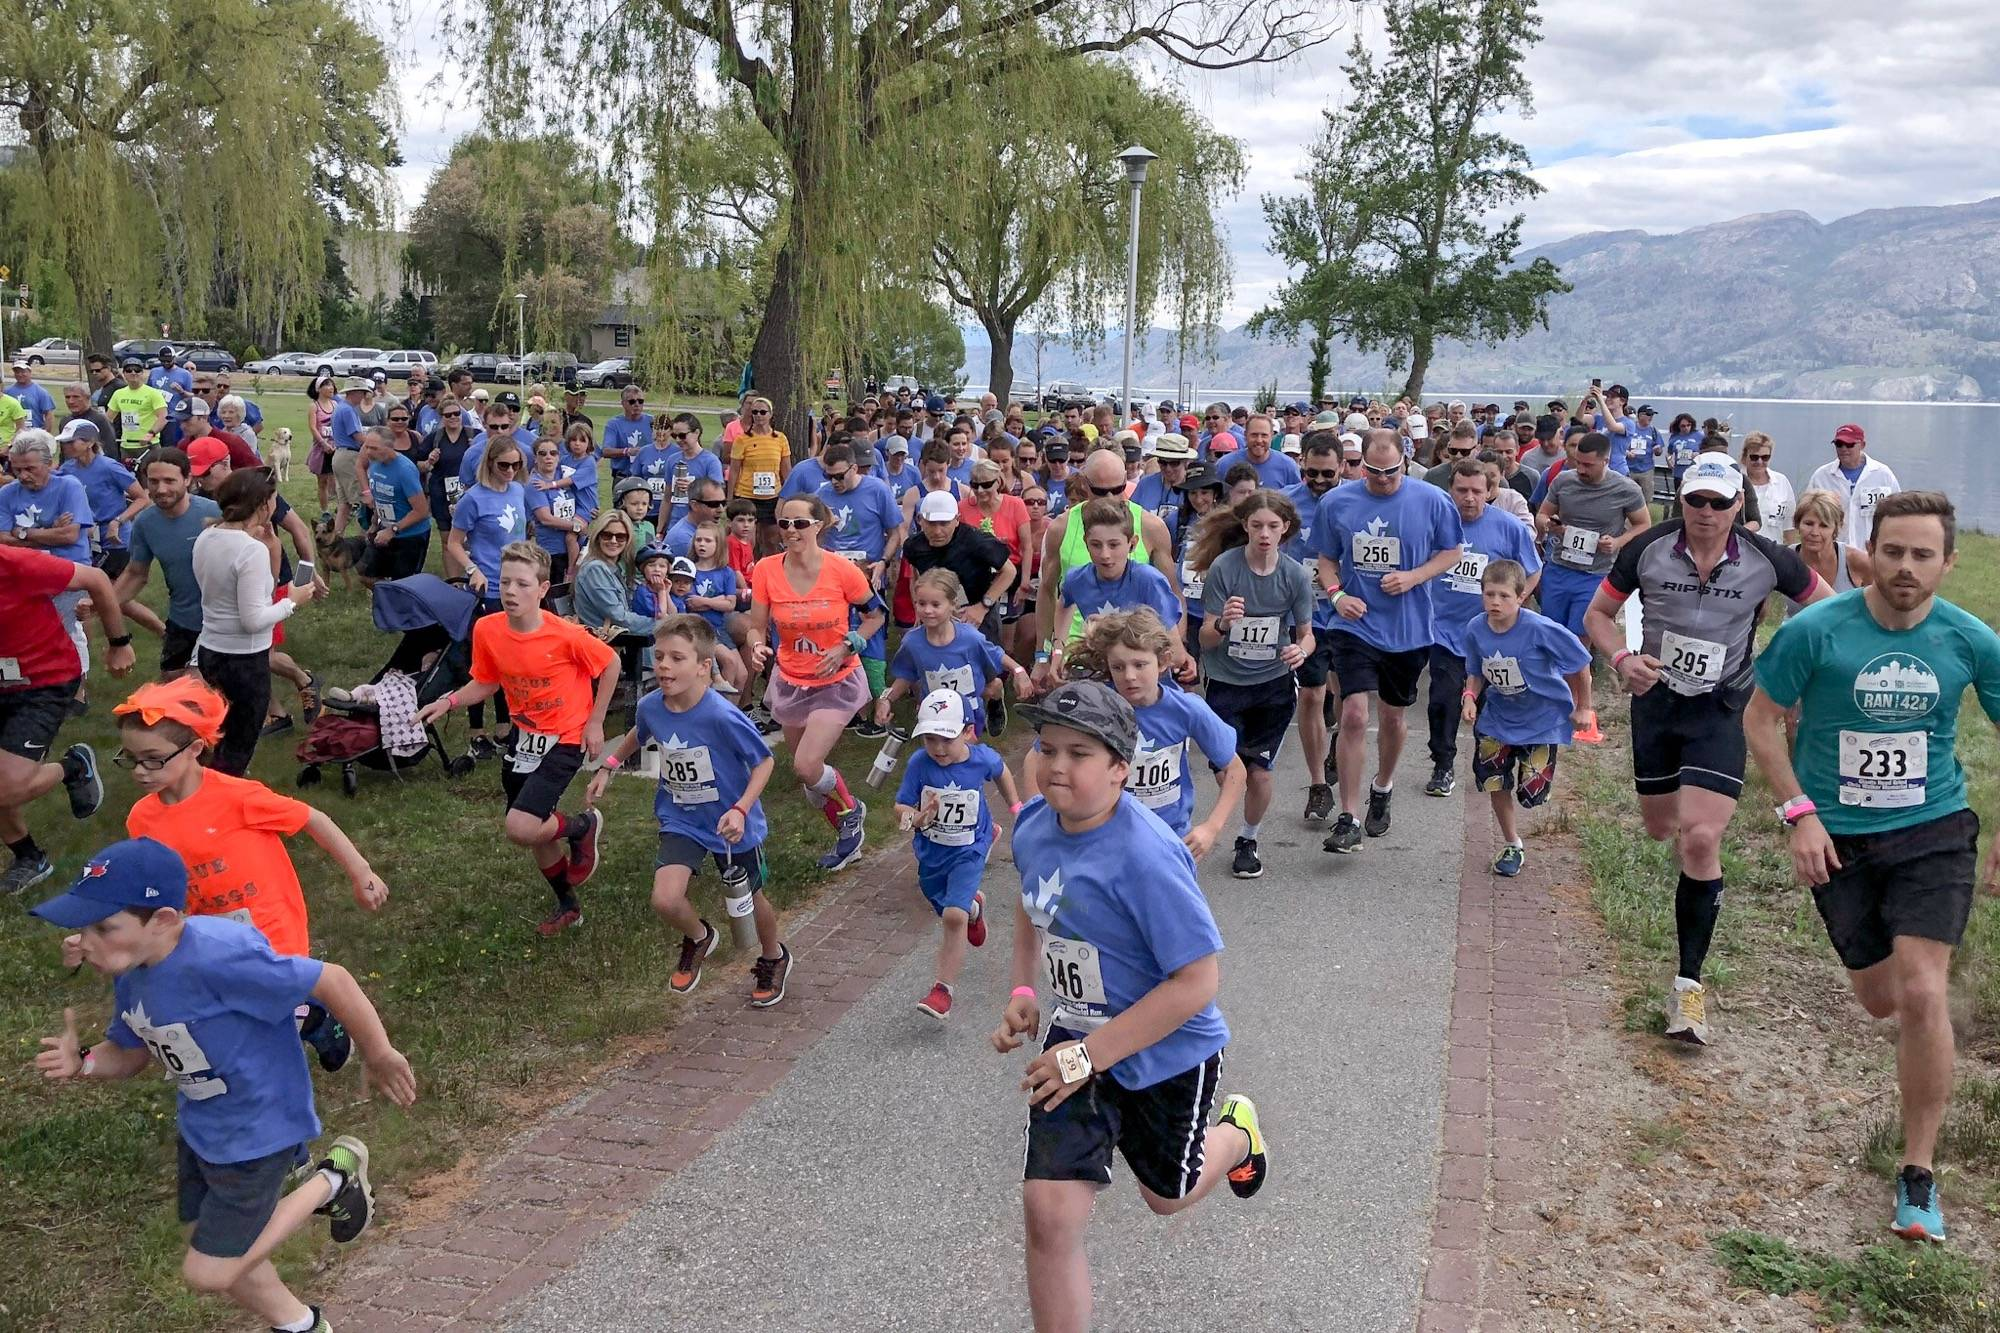 Runners compete in the 2018 Giant's Head Grind, an uphill race held each year in Summerland. (Photo courtesy of Kim Lawton)